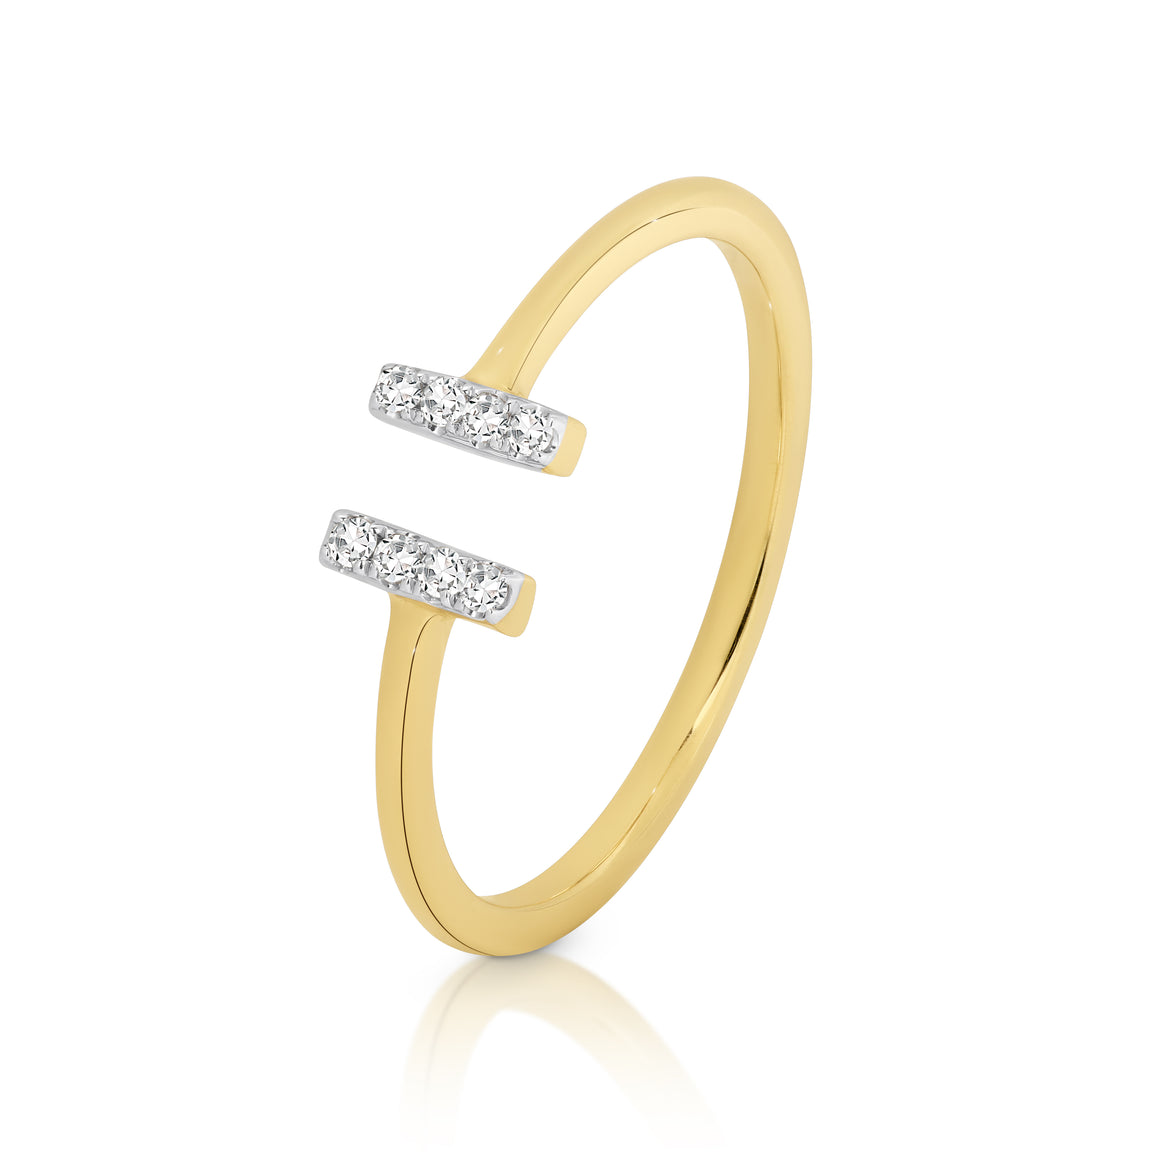 9ct Gold and Diamond 'Harlow' Ring - Gemma Stone Jewellery